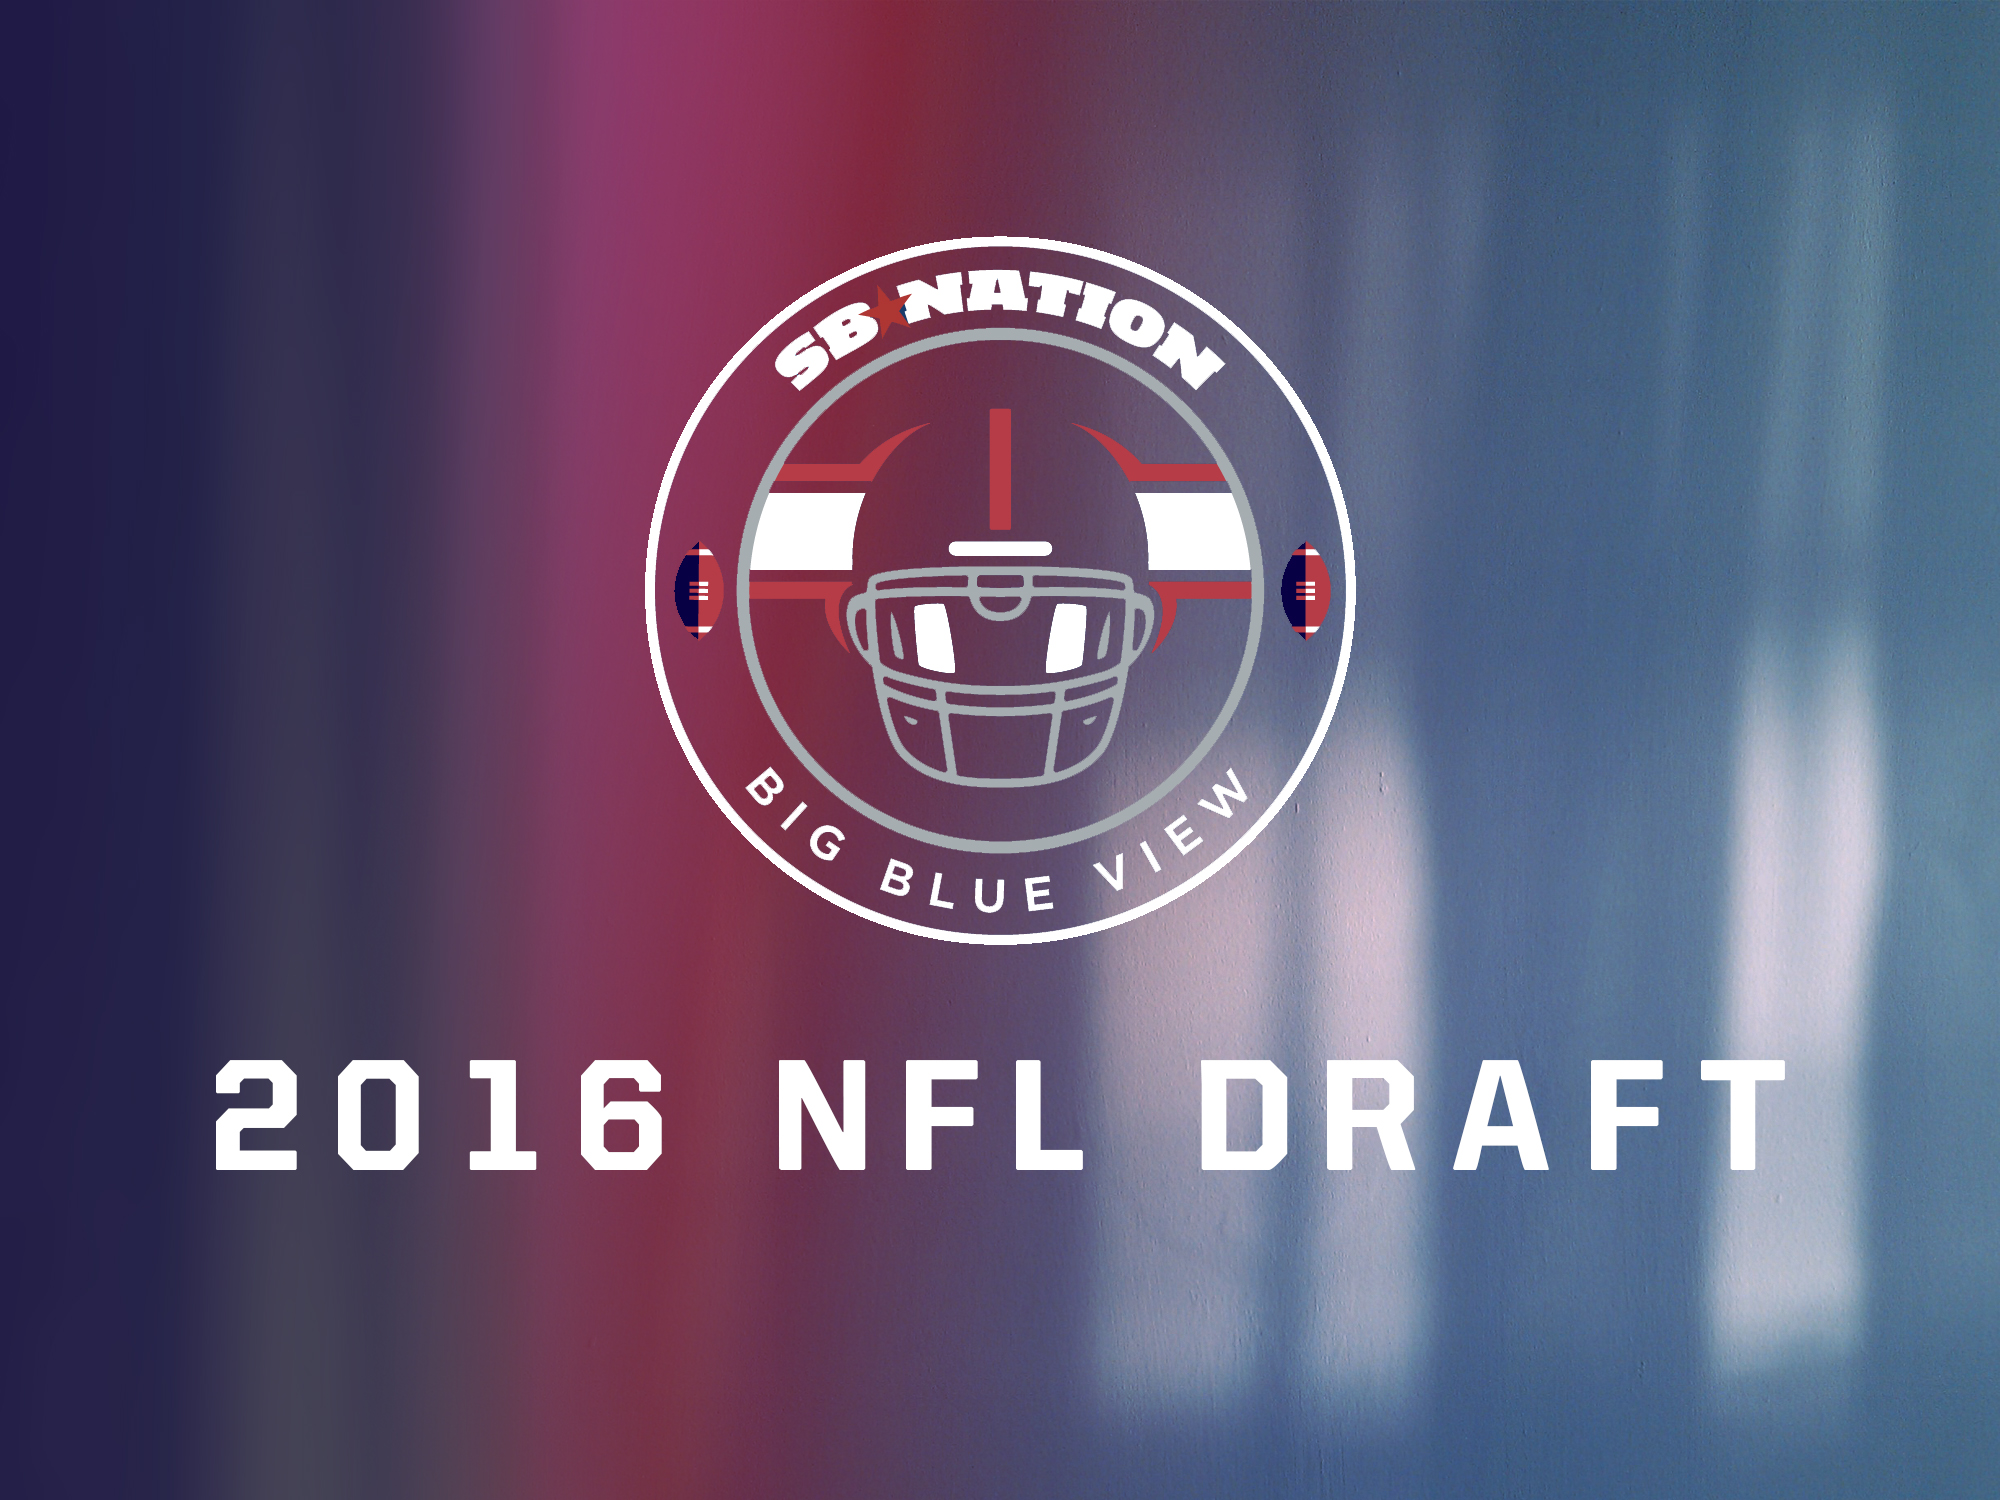 Nf Nfl Free Agents 2016 Rankings - 2016 nfl draft logo